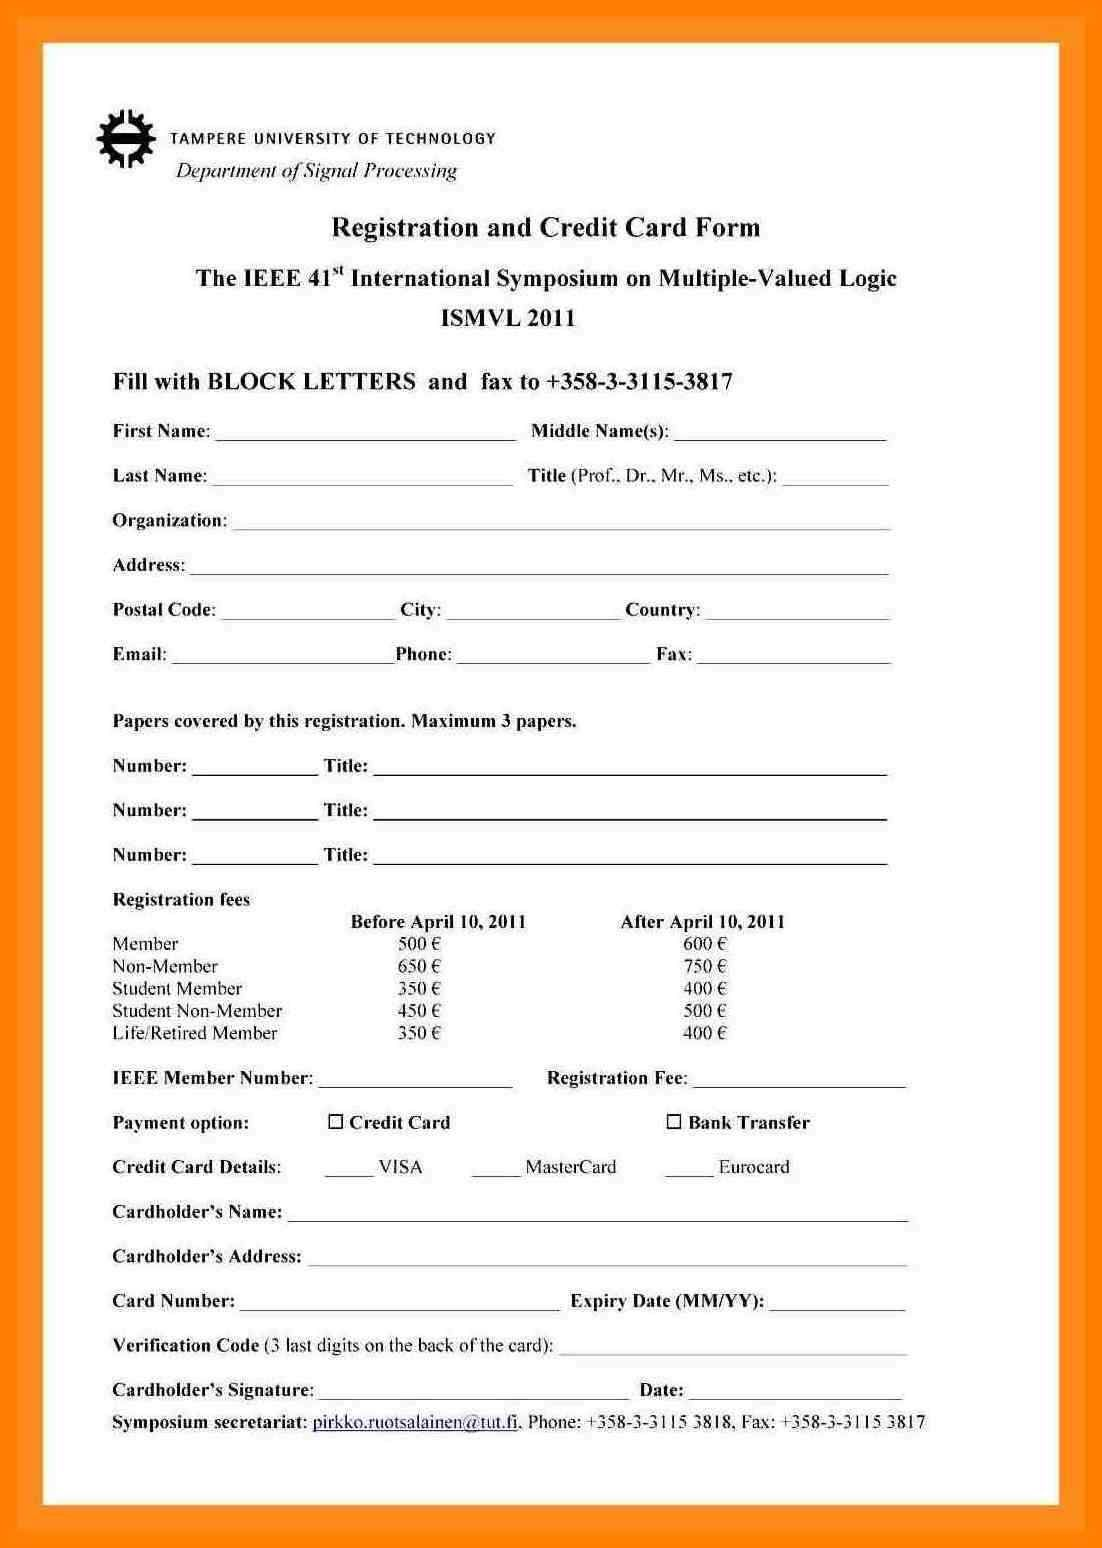 e103195555ea824c3dbb7ed9274d729a - Tut Application Form For Teaching